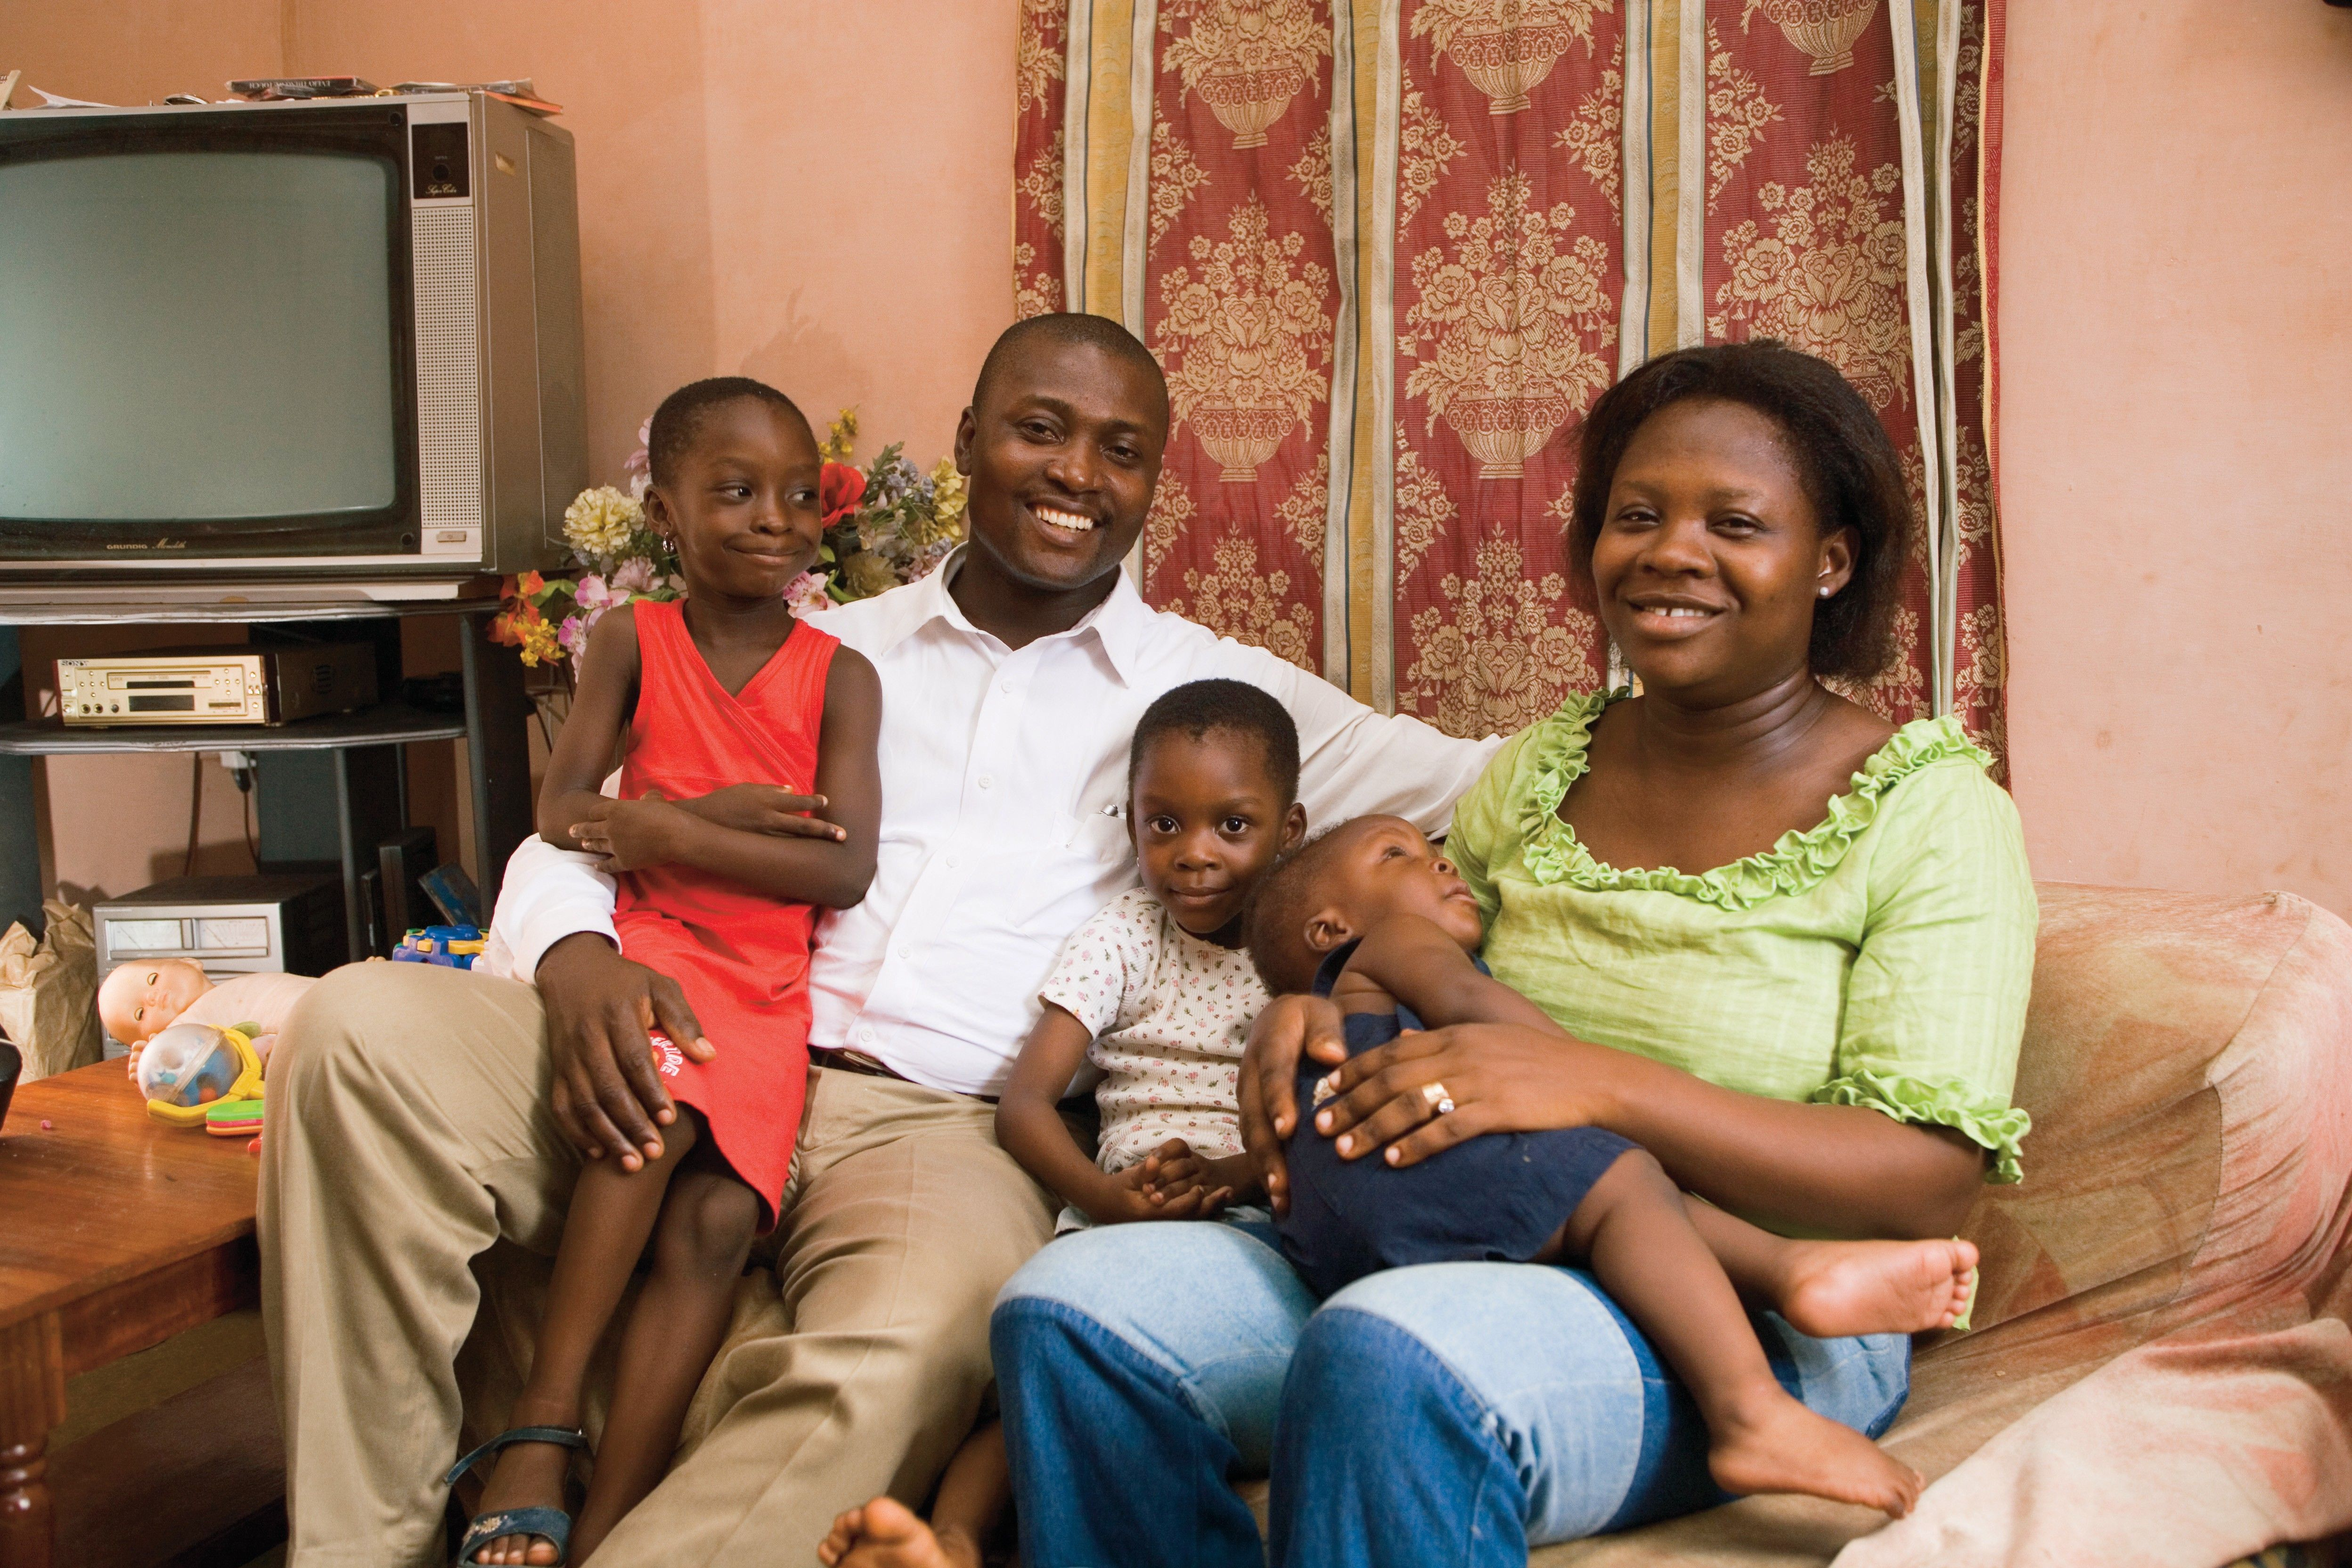 A family portrait in a home.